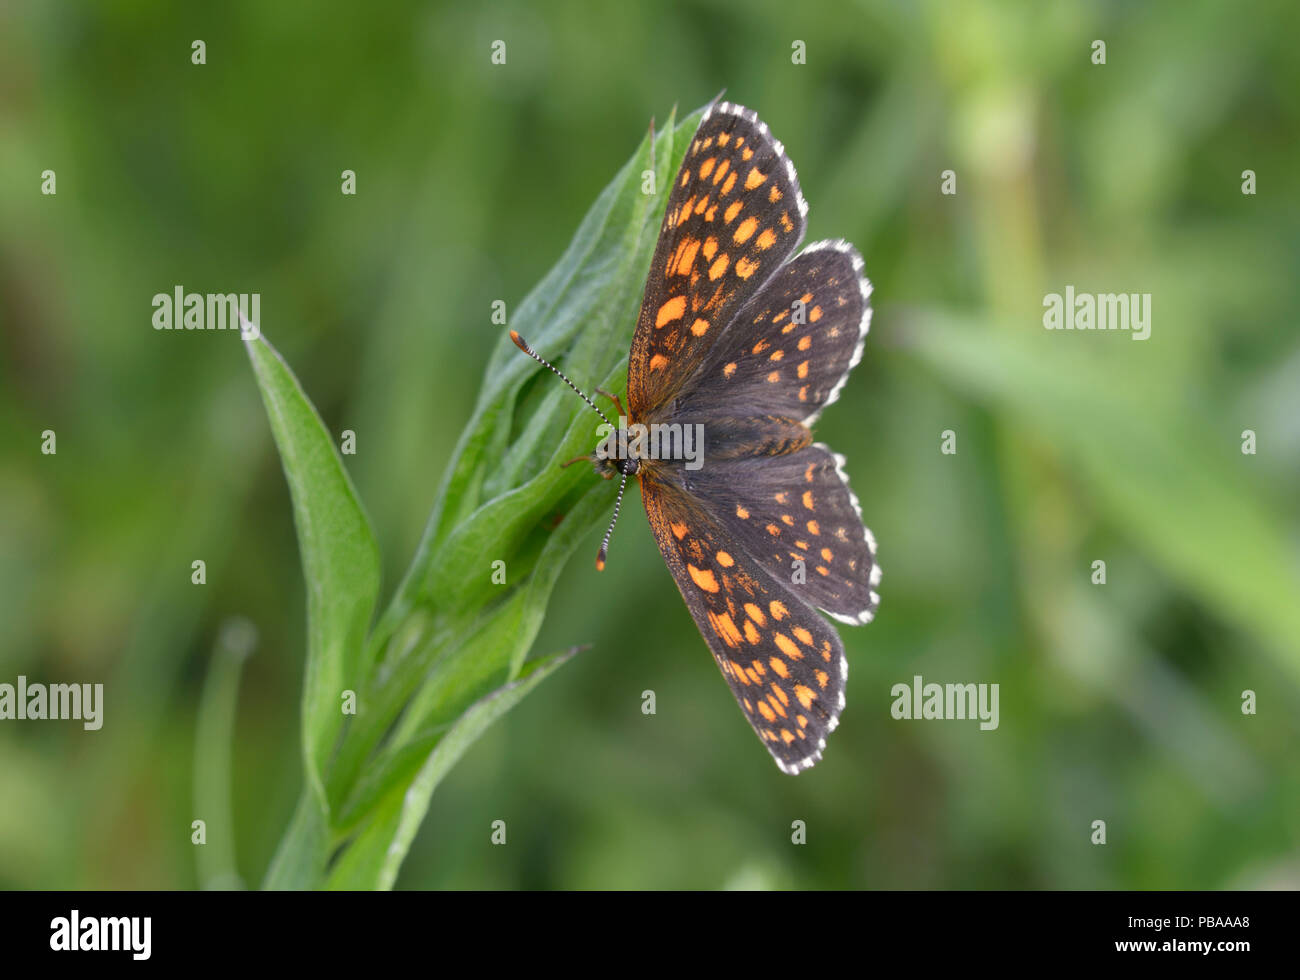 Brush-footed butterfly, Melitaea, sitting on a plant stem in front of a blurred background - Stock Image